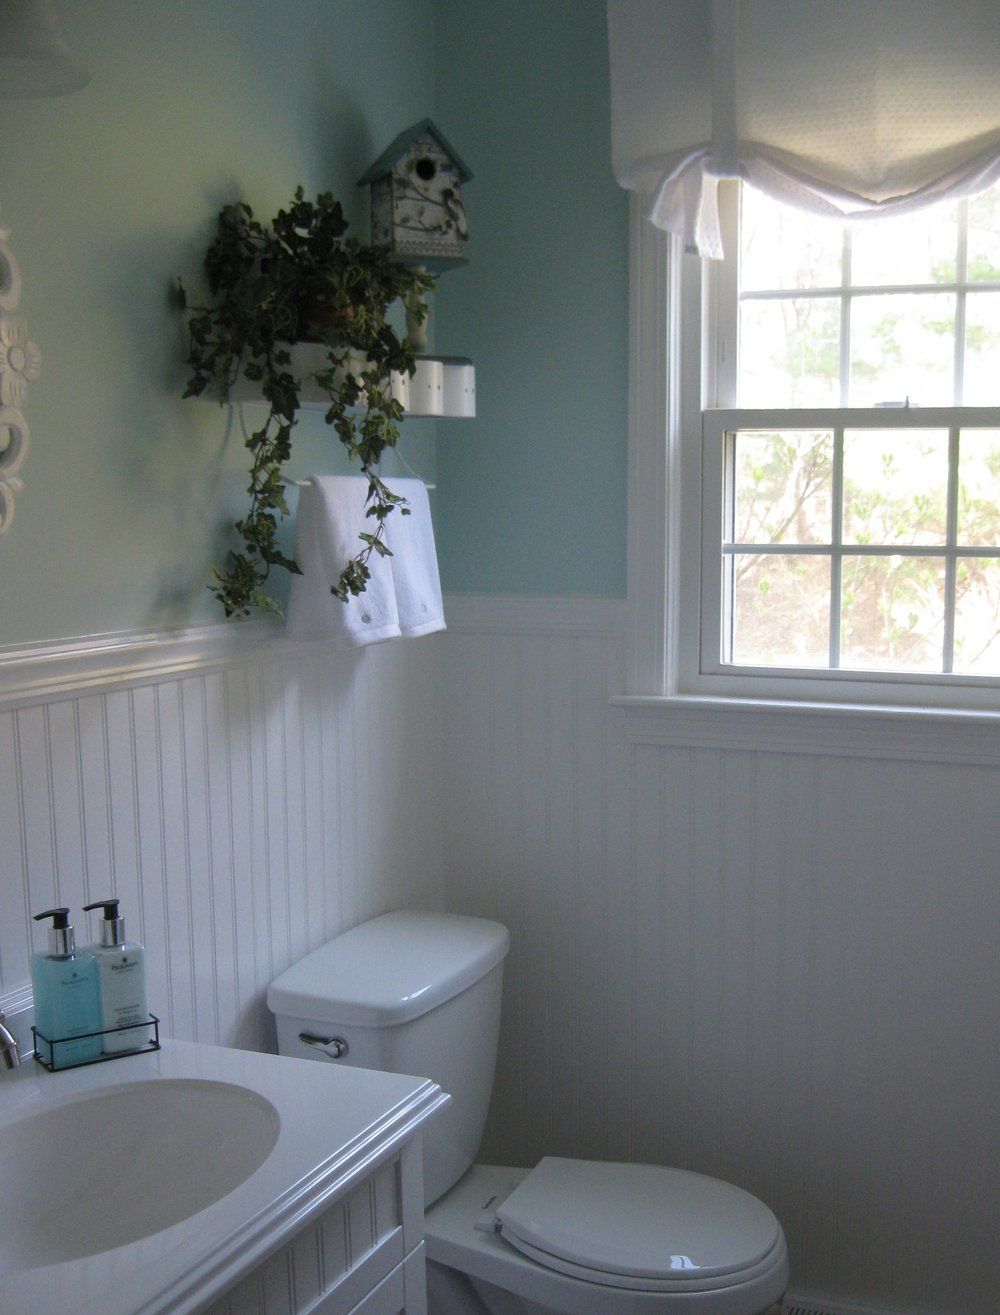 - Robins egg blue walls and crisp white trim give this sunny powder room an airy feel